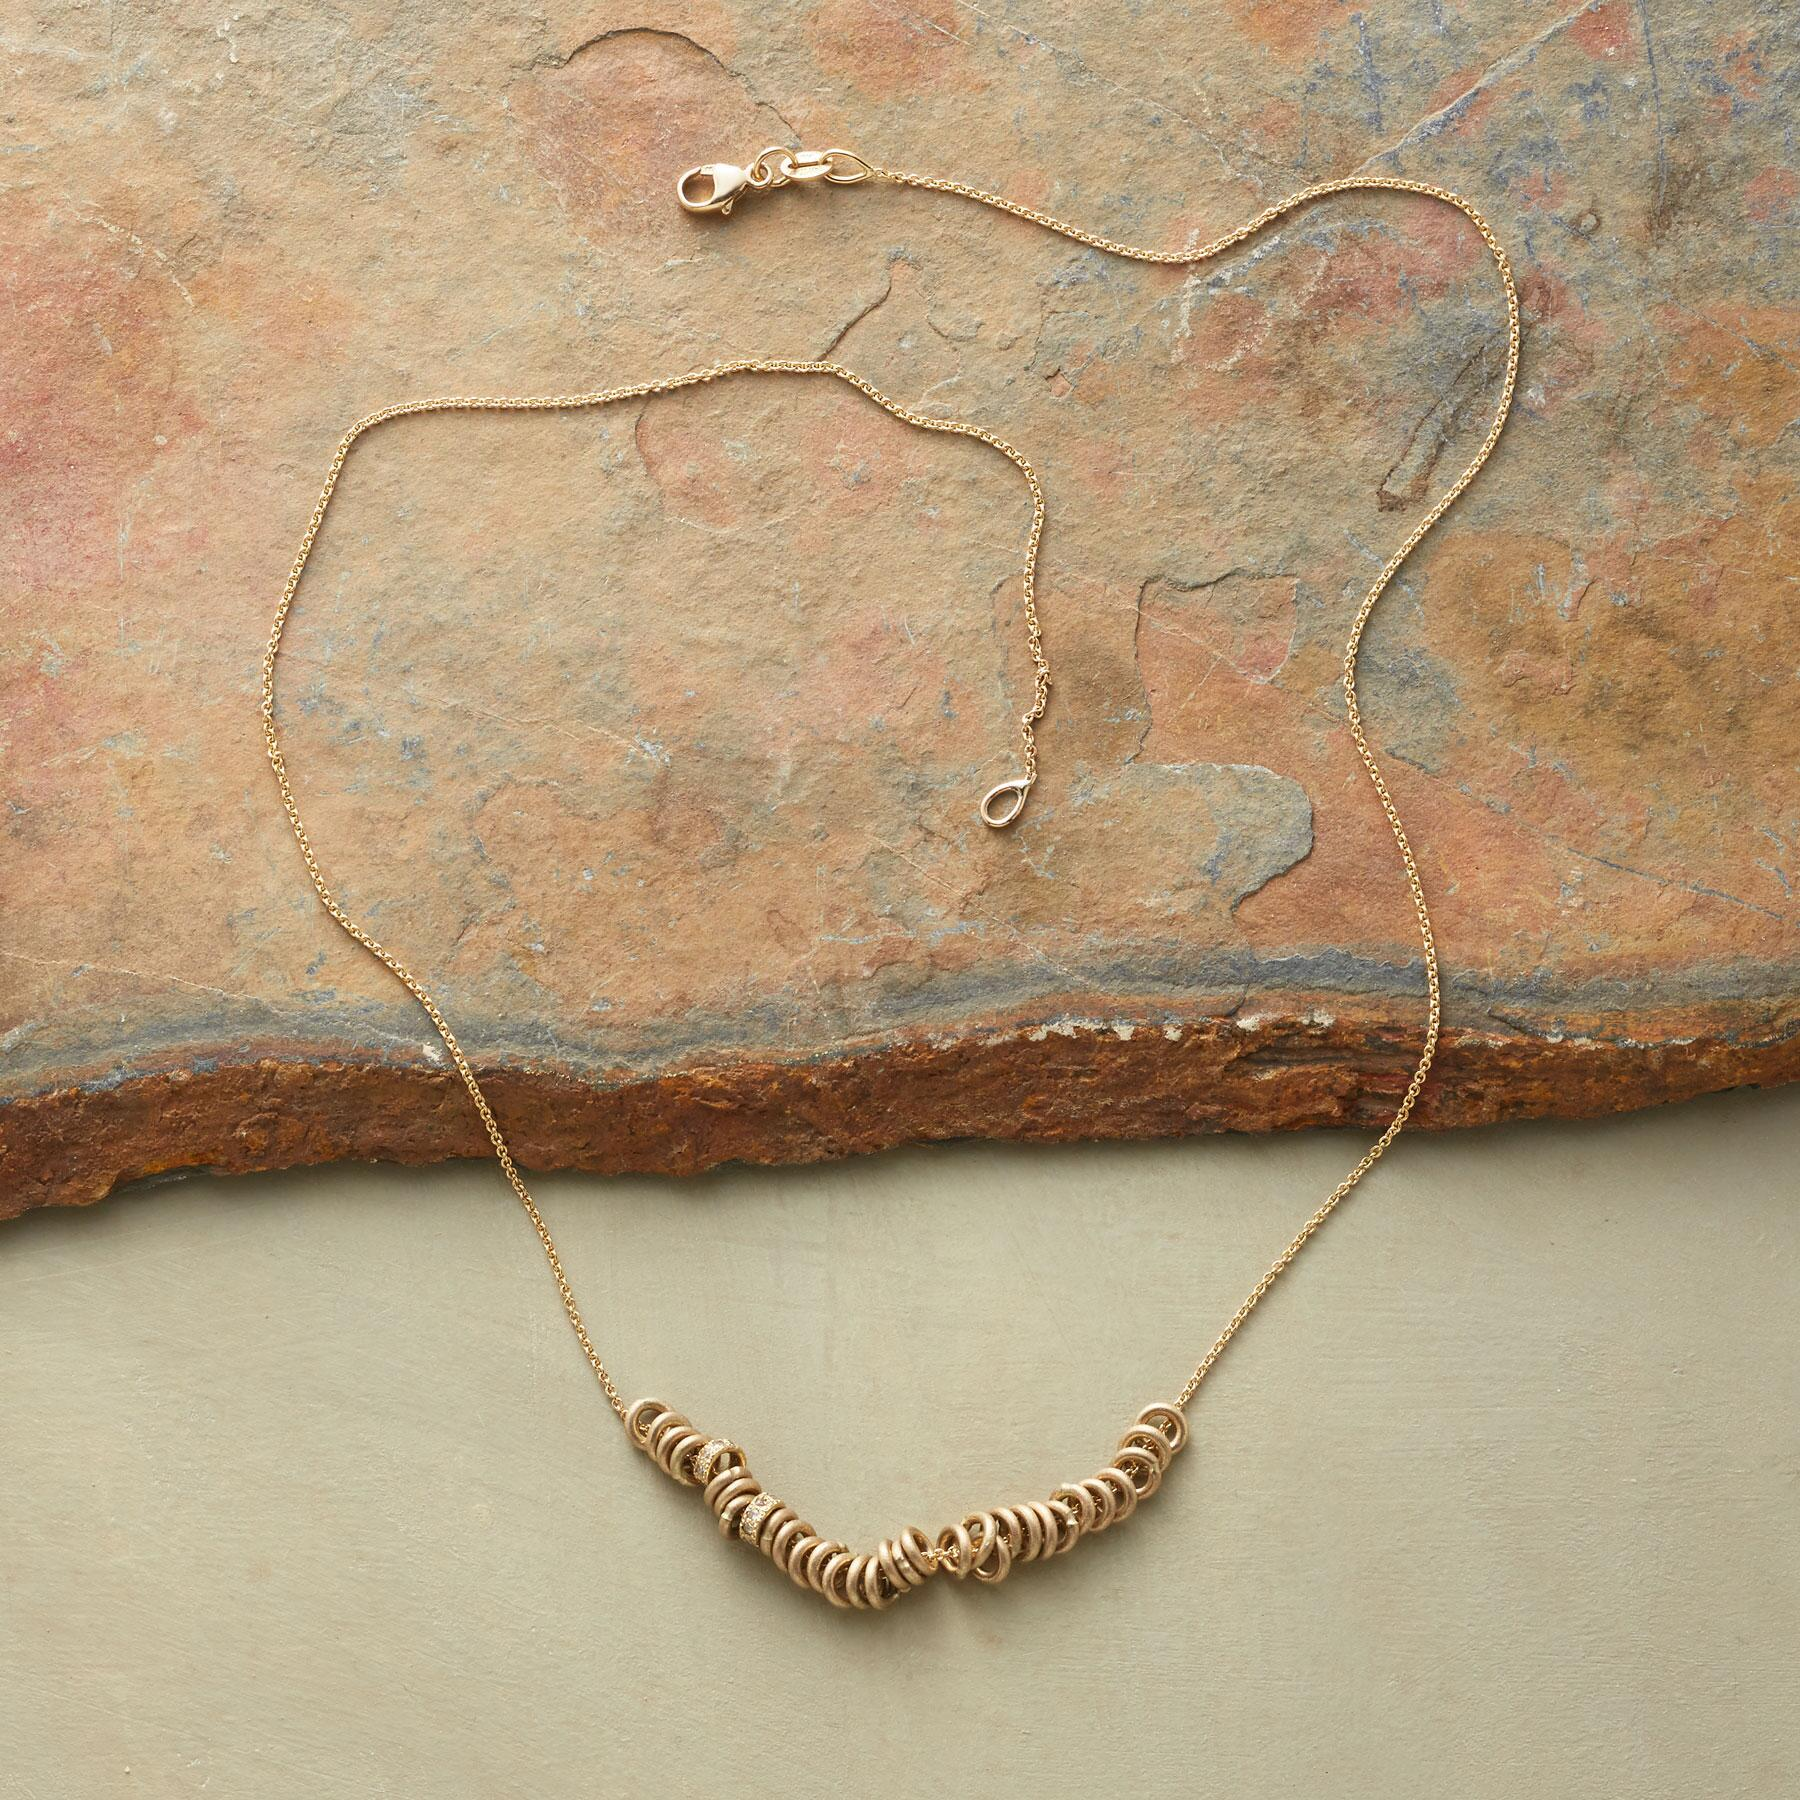 SECOND LOOK NECKLACE: View 2